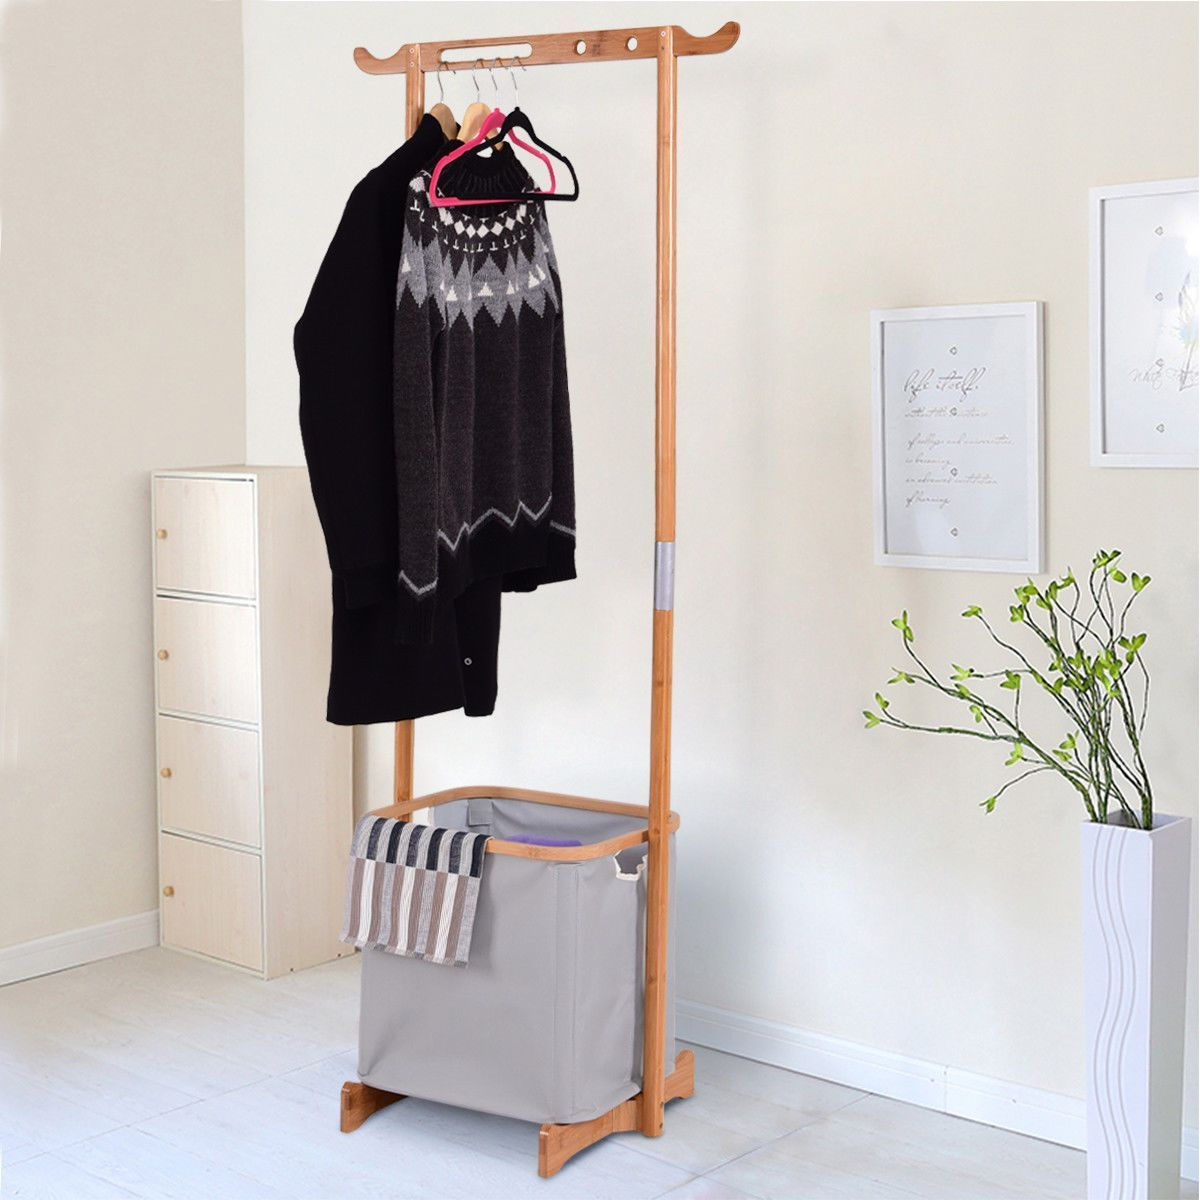 Bamboo Clothes Drying Rack Portable Laundry Hamper Garment Hanger Storage Clothing Organizer